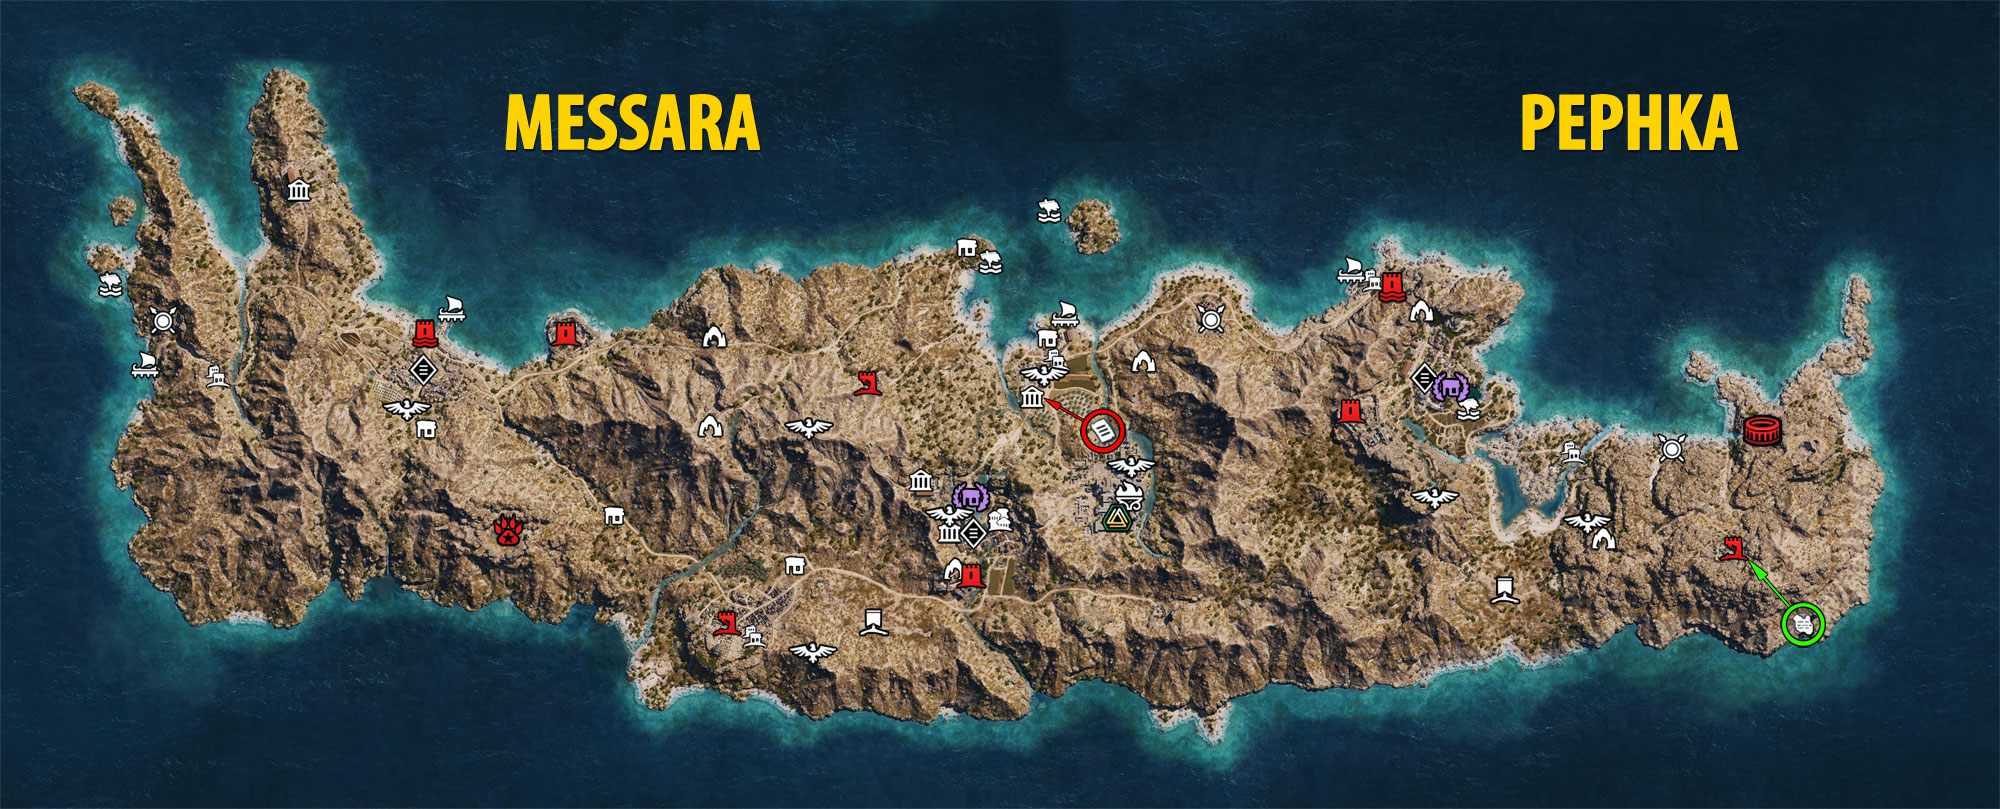 Messara and Pephka Maps - Assassin's Creed Odyssey